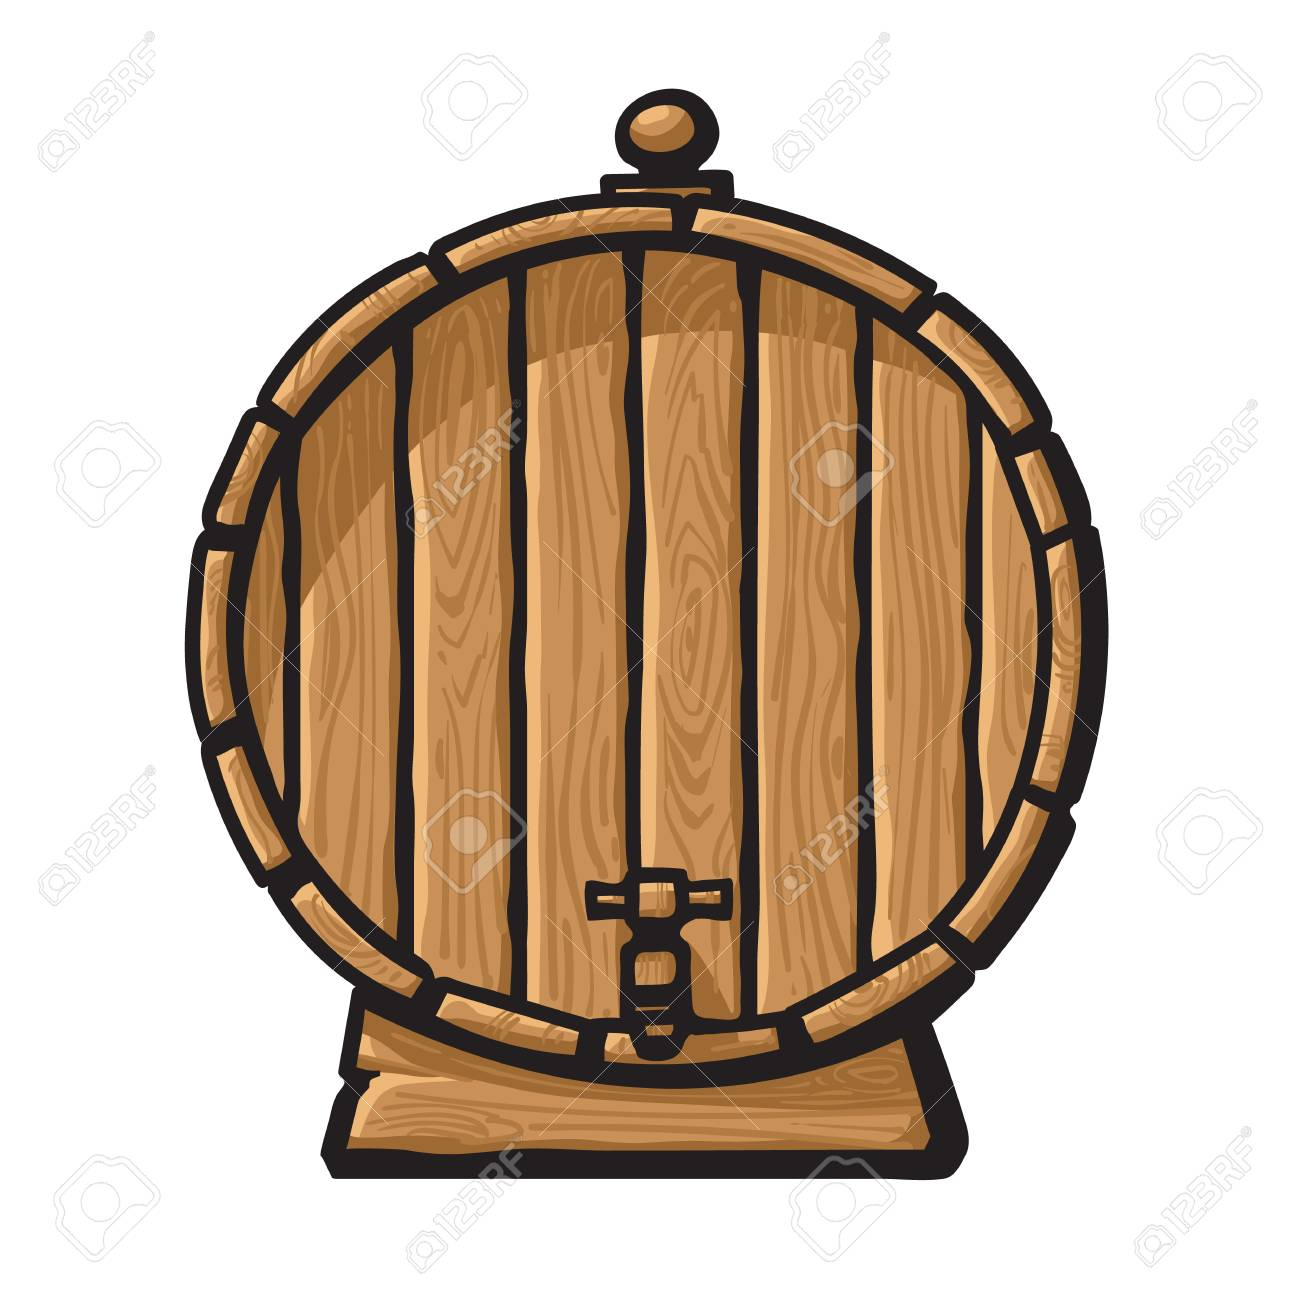 Cartoon Old Wooden Barrel With Tap Hand Drawn Vector Illustration Royalty Free Cliparts Vectors And Stock Illustration Image 127669889